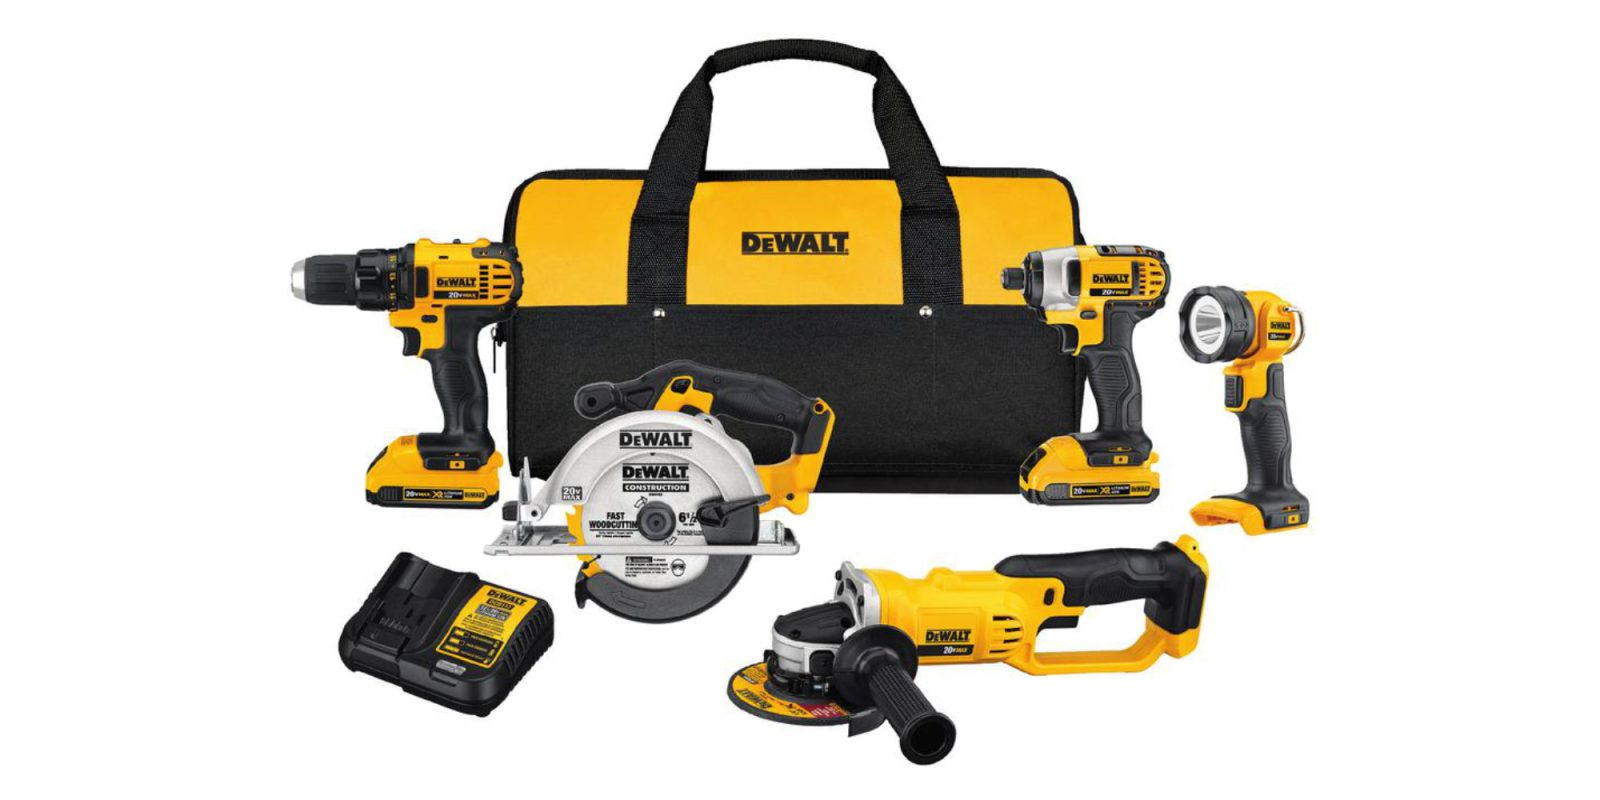 Dewalt - 9to5Toys